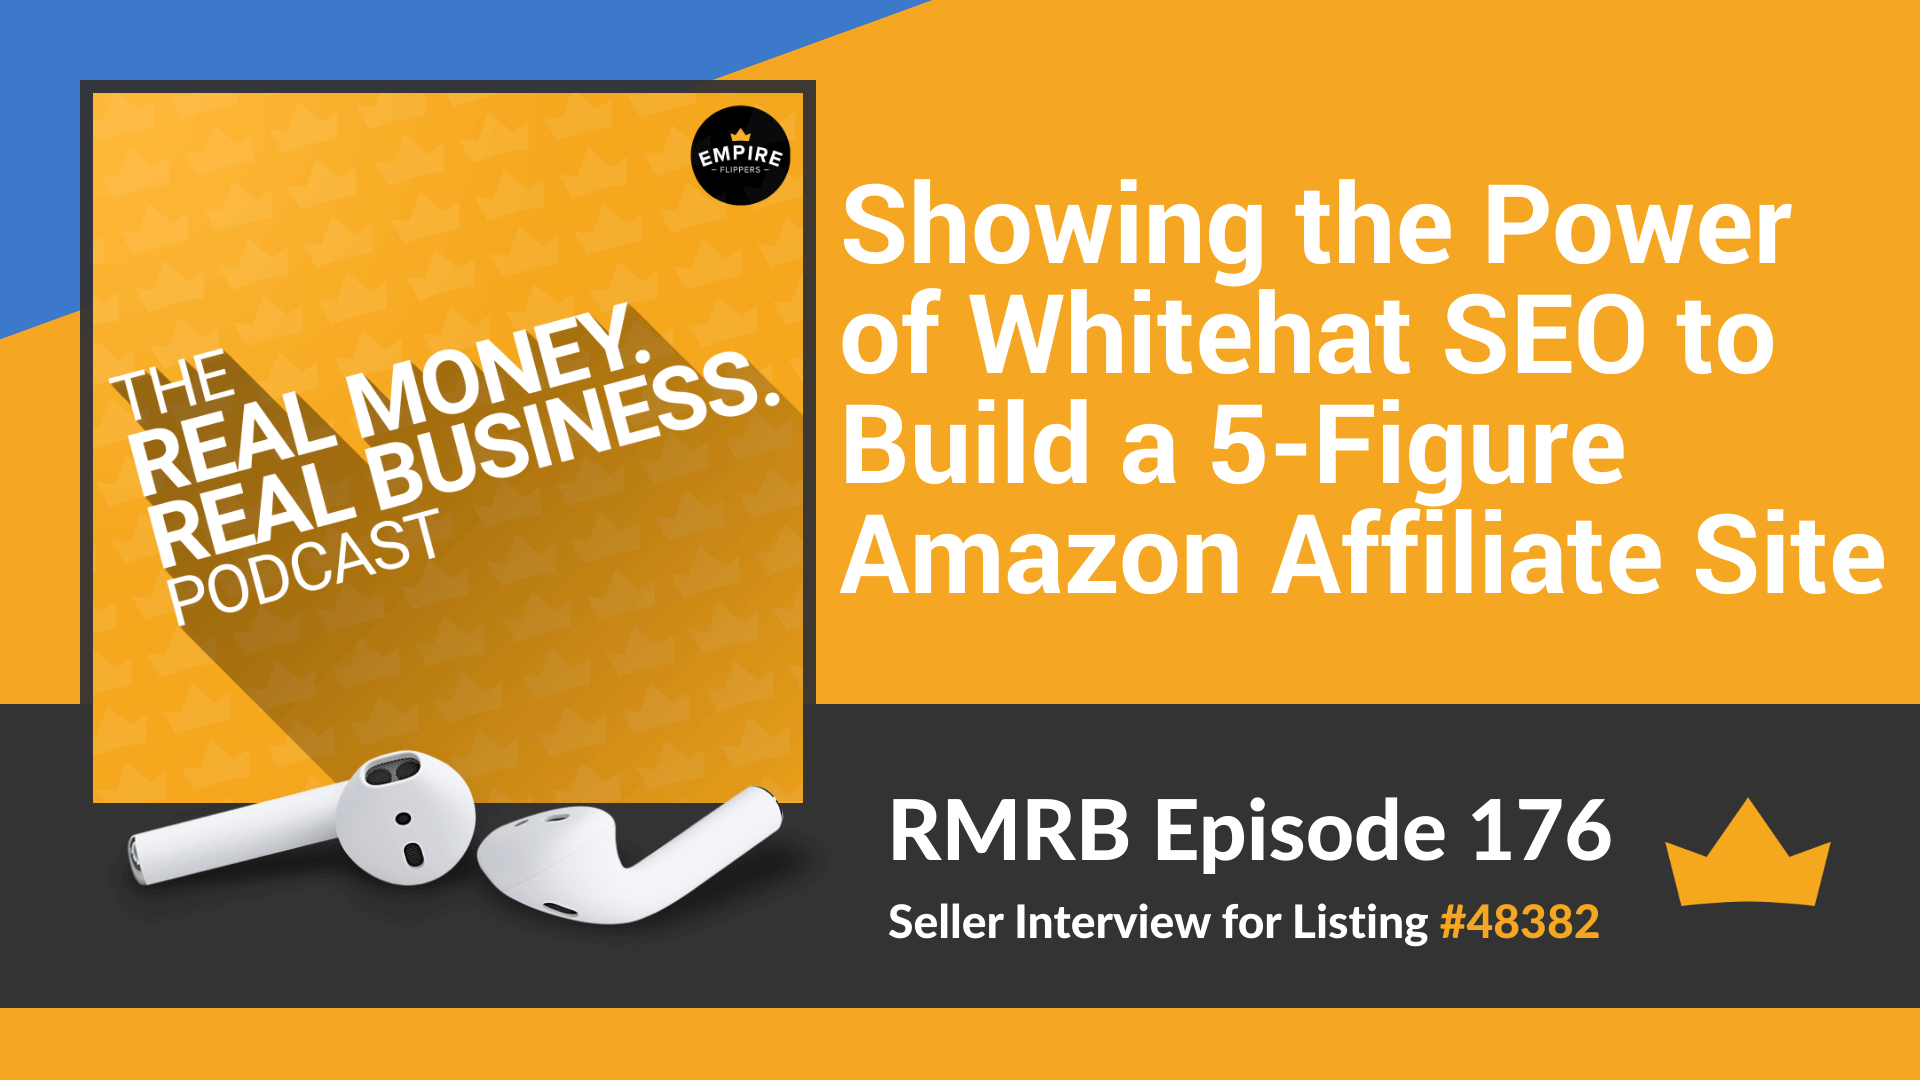 RMRB 176: Showing the Power of Whitehat SEO to Build a 5-Figure Amazon Affiliate Site